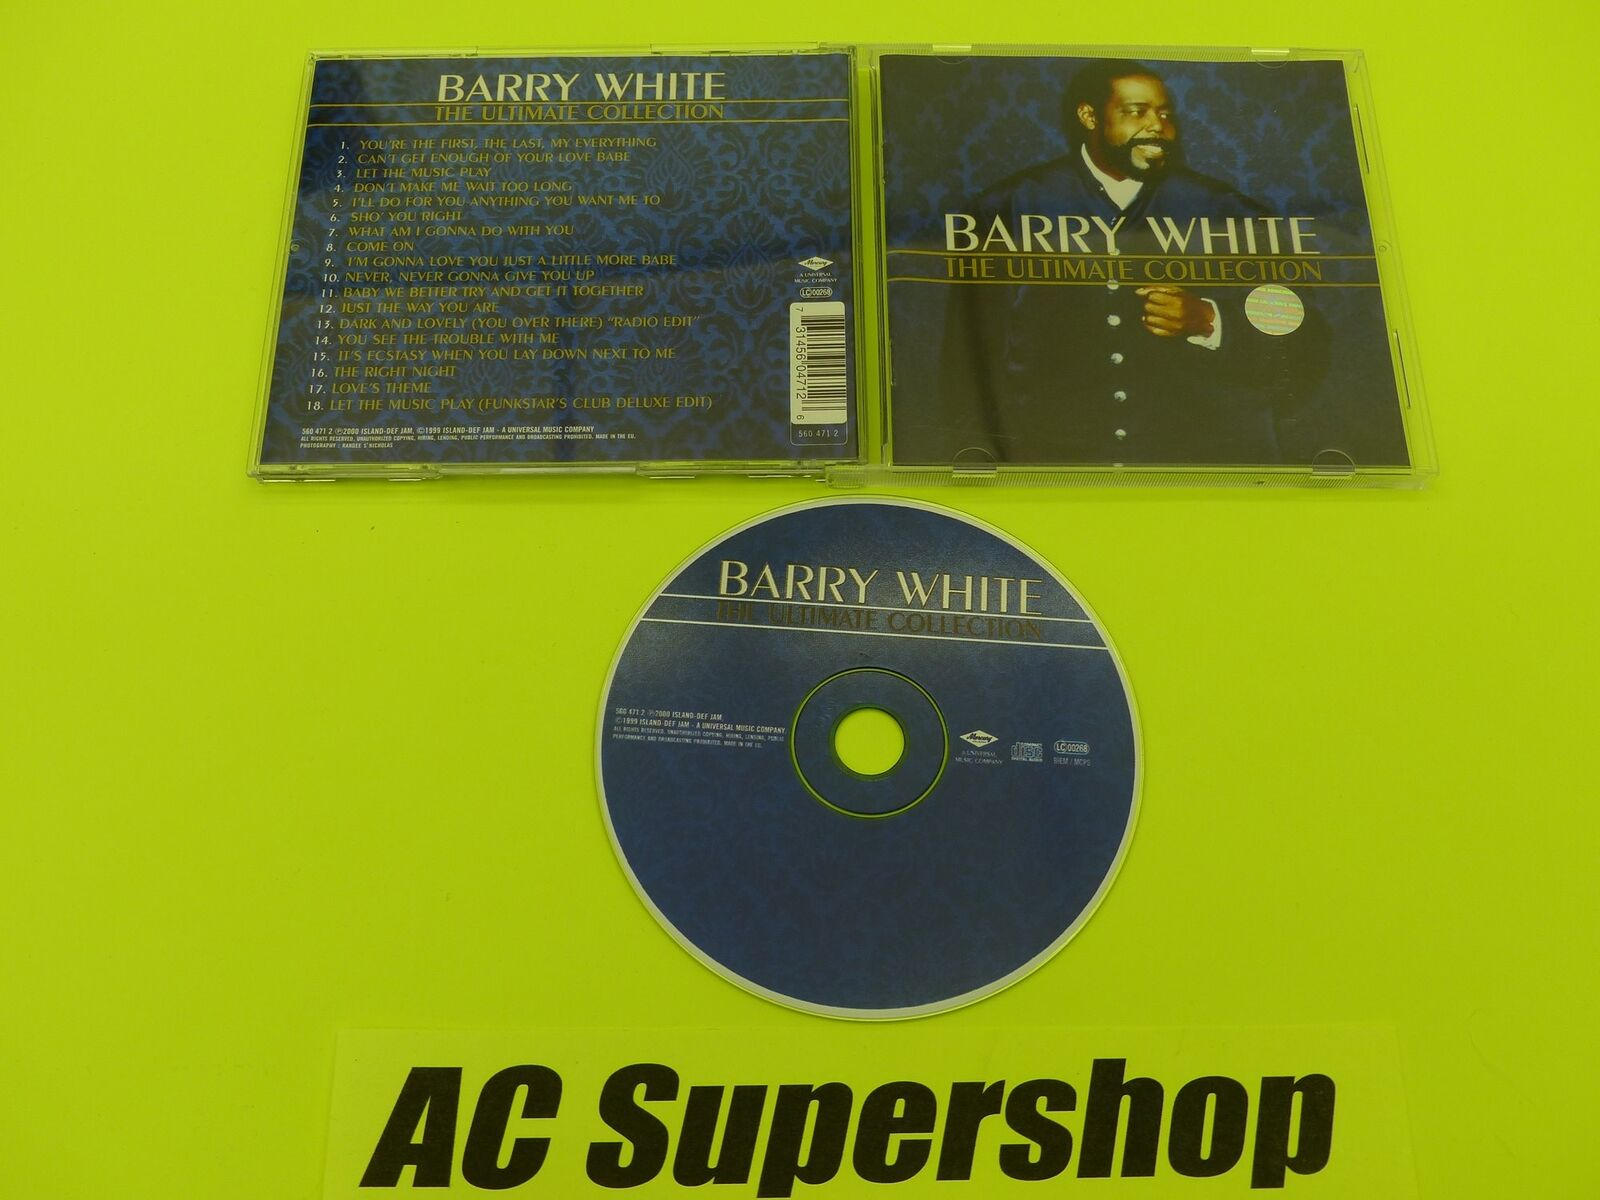 Barry White Ultimate Collection: Barry White The Ultimate Collection - CD Compact Disc